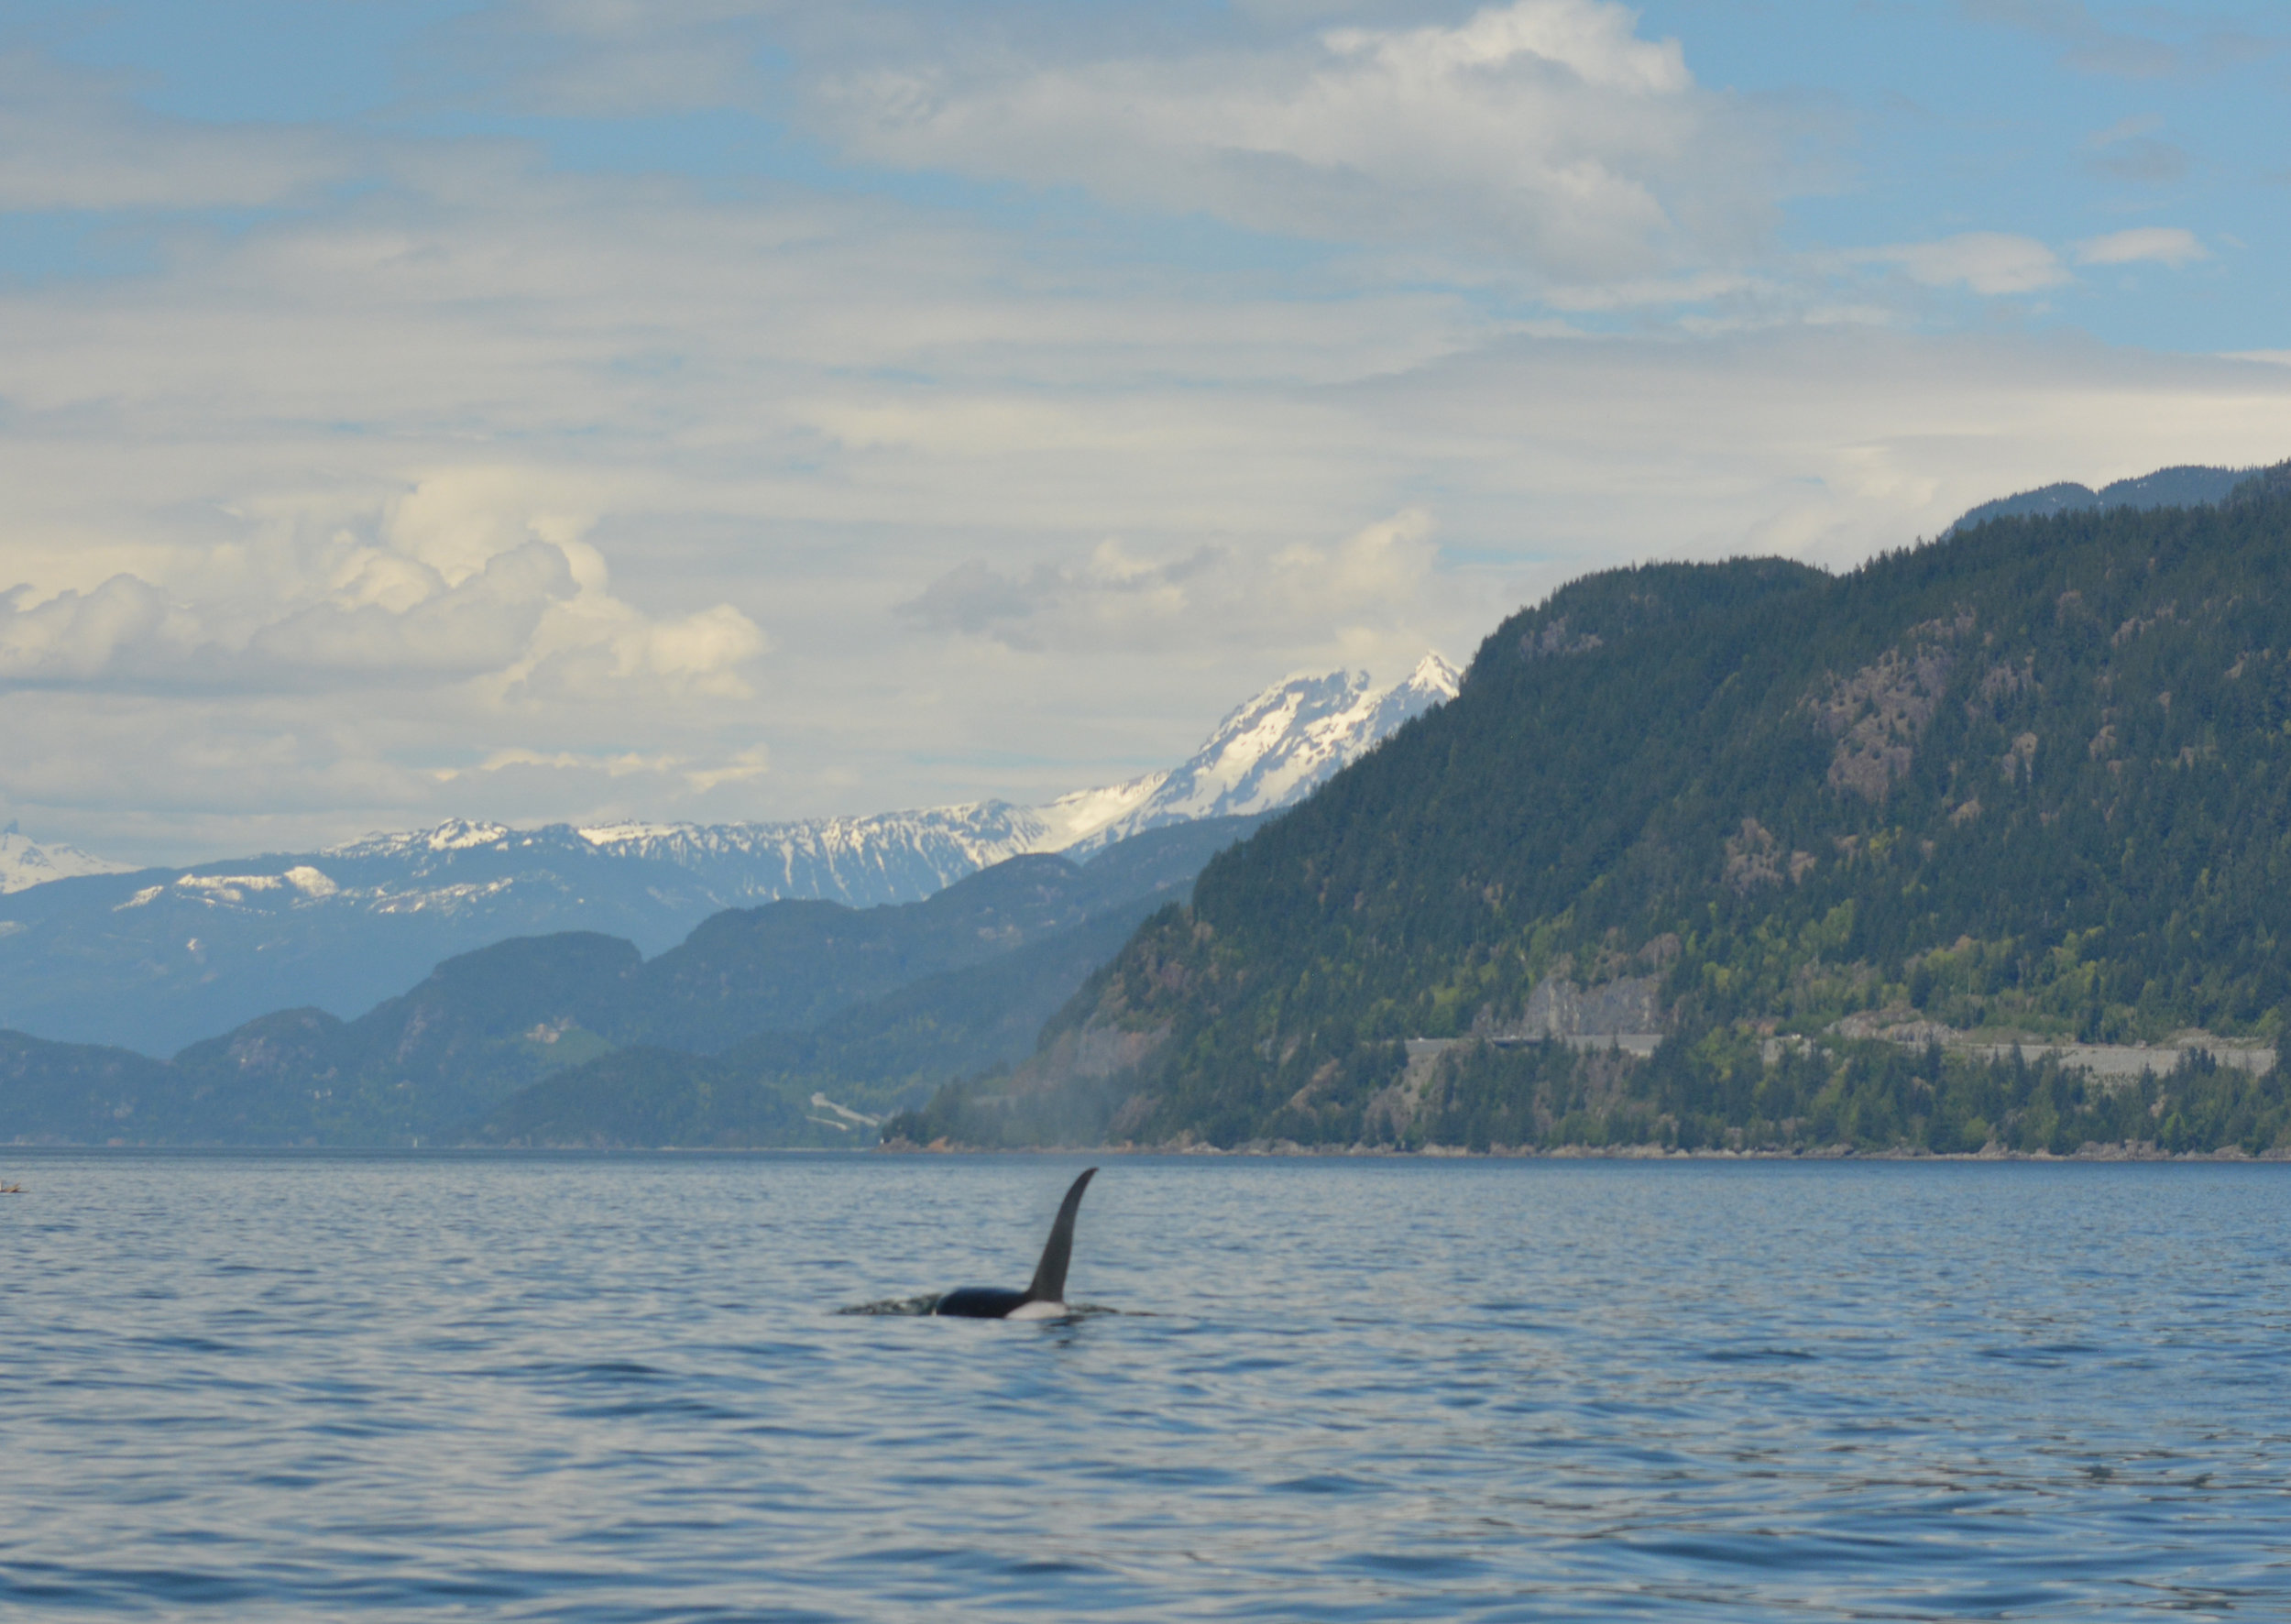 Whales are big, but mountains are bigger! Beardslee surfacing in Howe Sound. Photo by Mike Campbell.